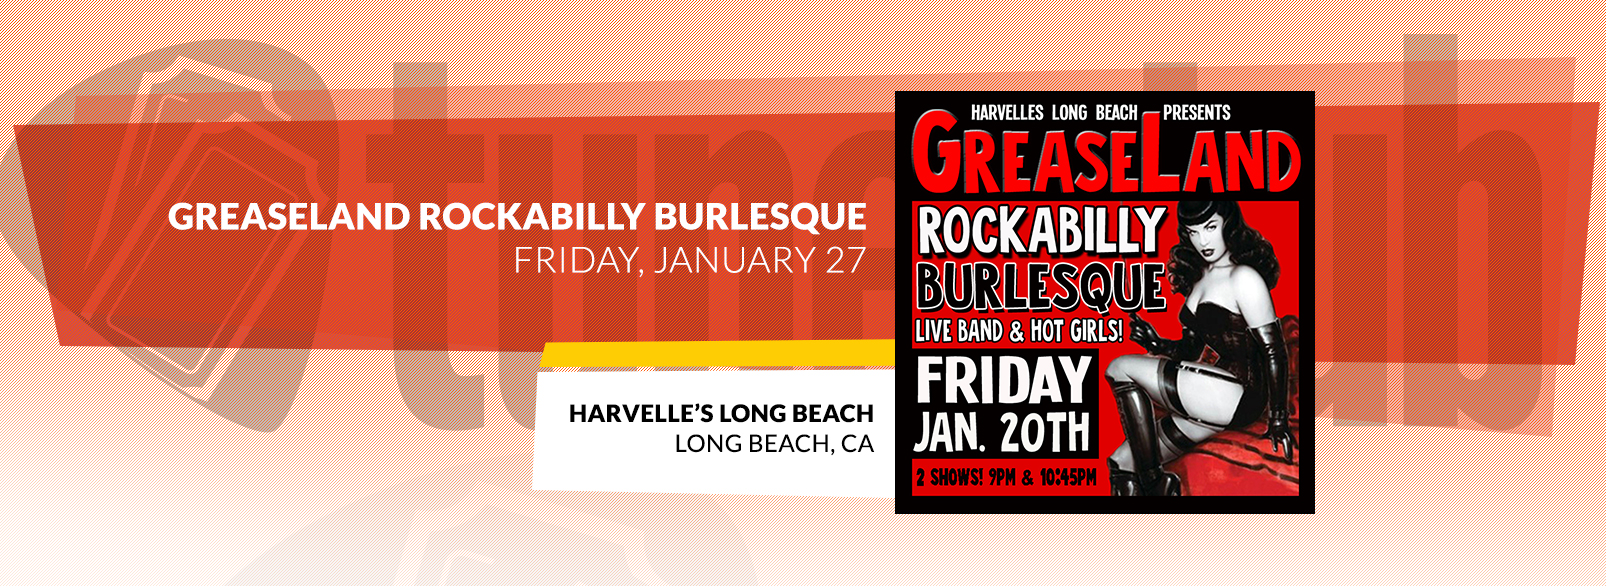 Greaseland Rockabilly Burlesque @ Harvelle's Long Beach